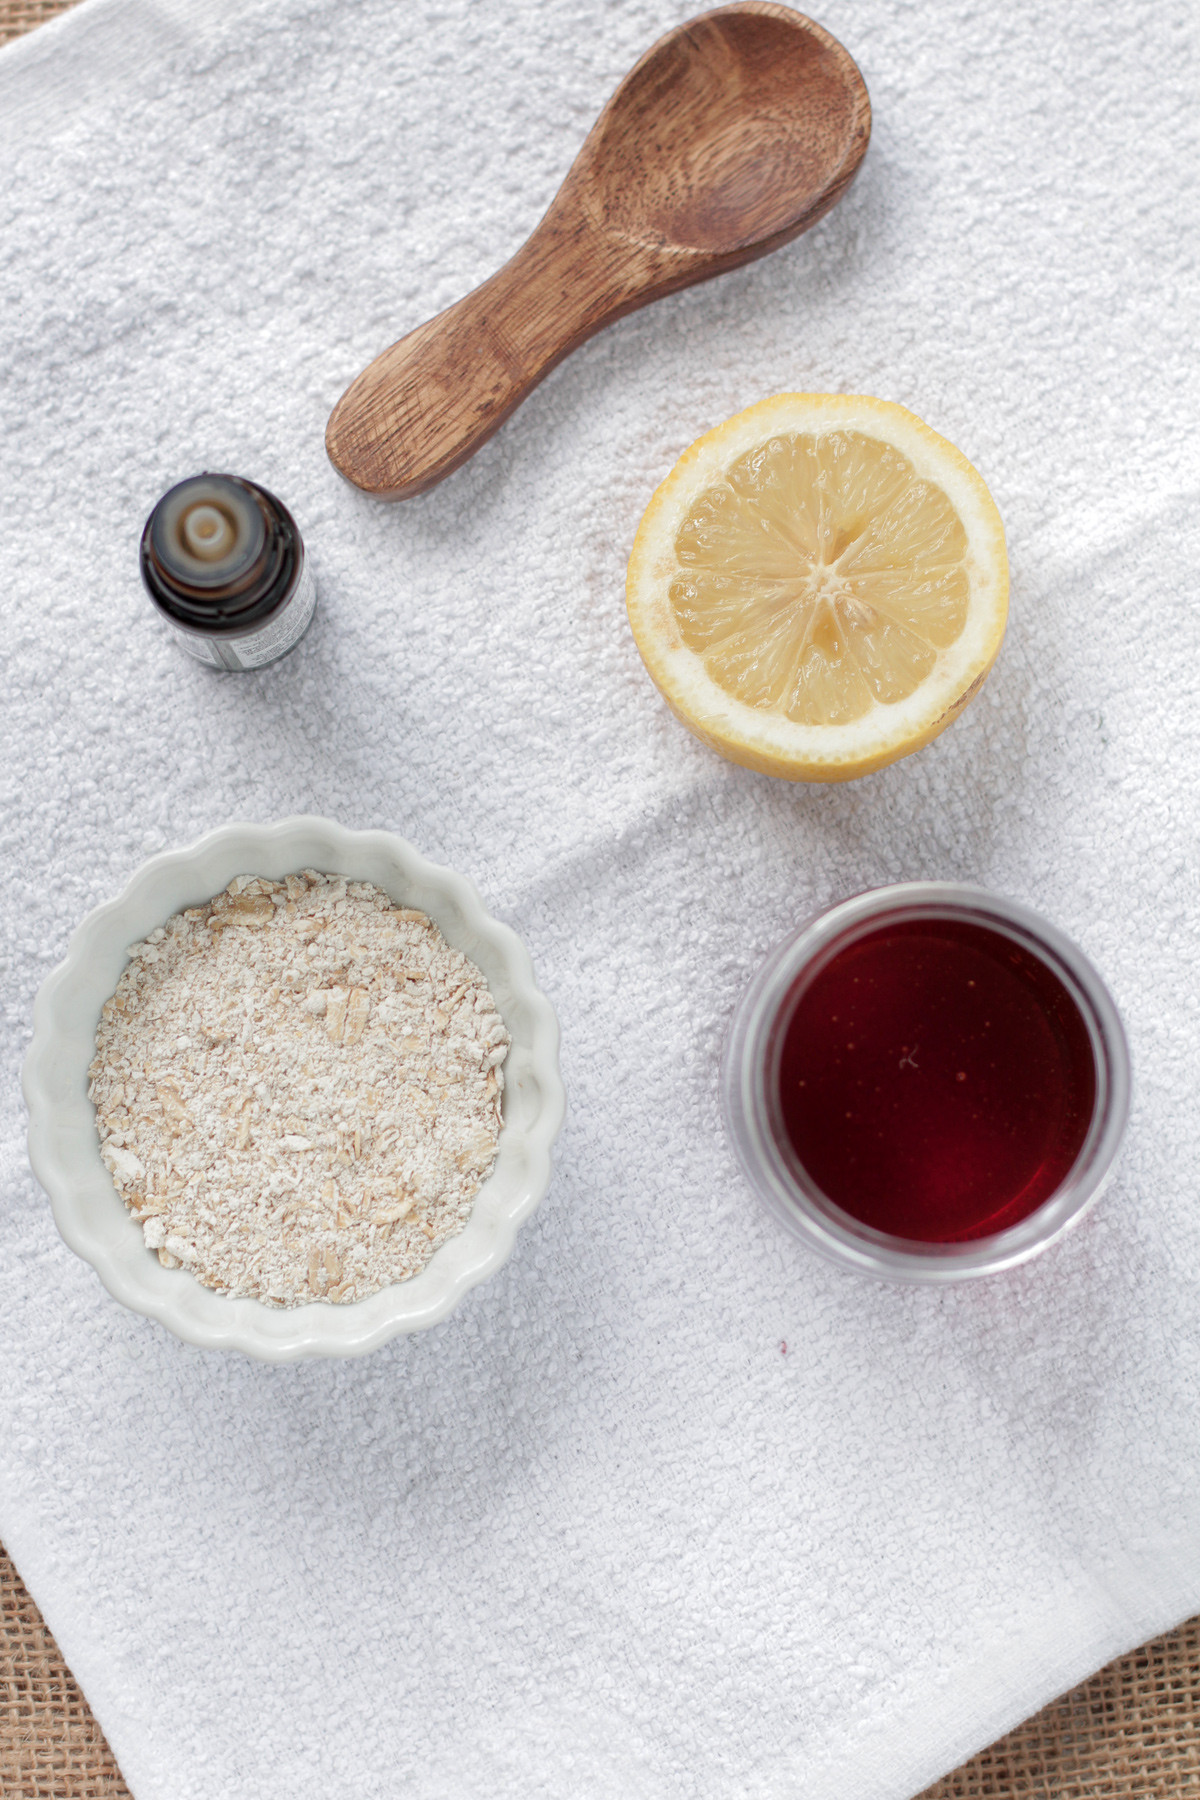 Best ideas about DIY Oatmeal Mask . Save or Pin Homemade Honey Oatmeal Acne Mask Live Simply Now.